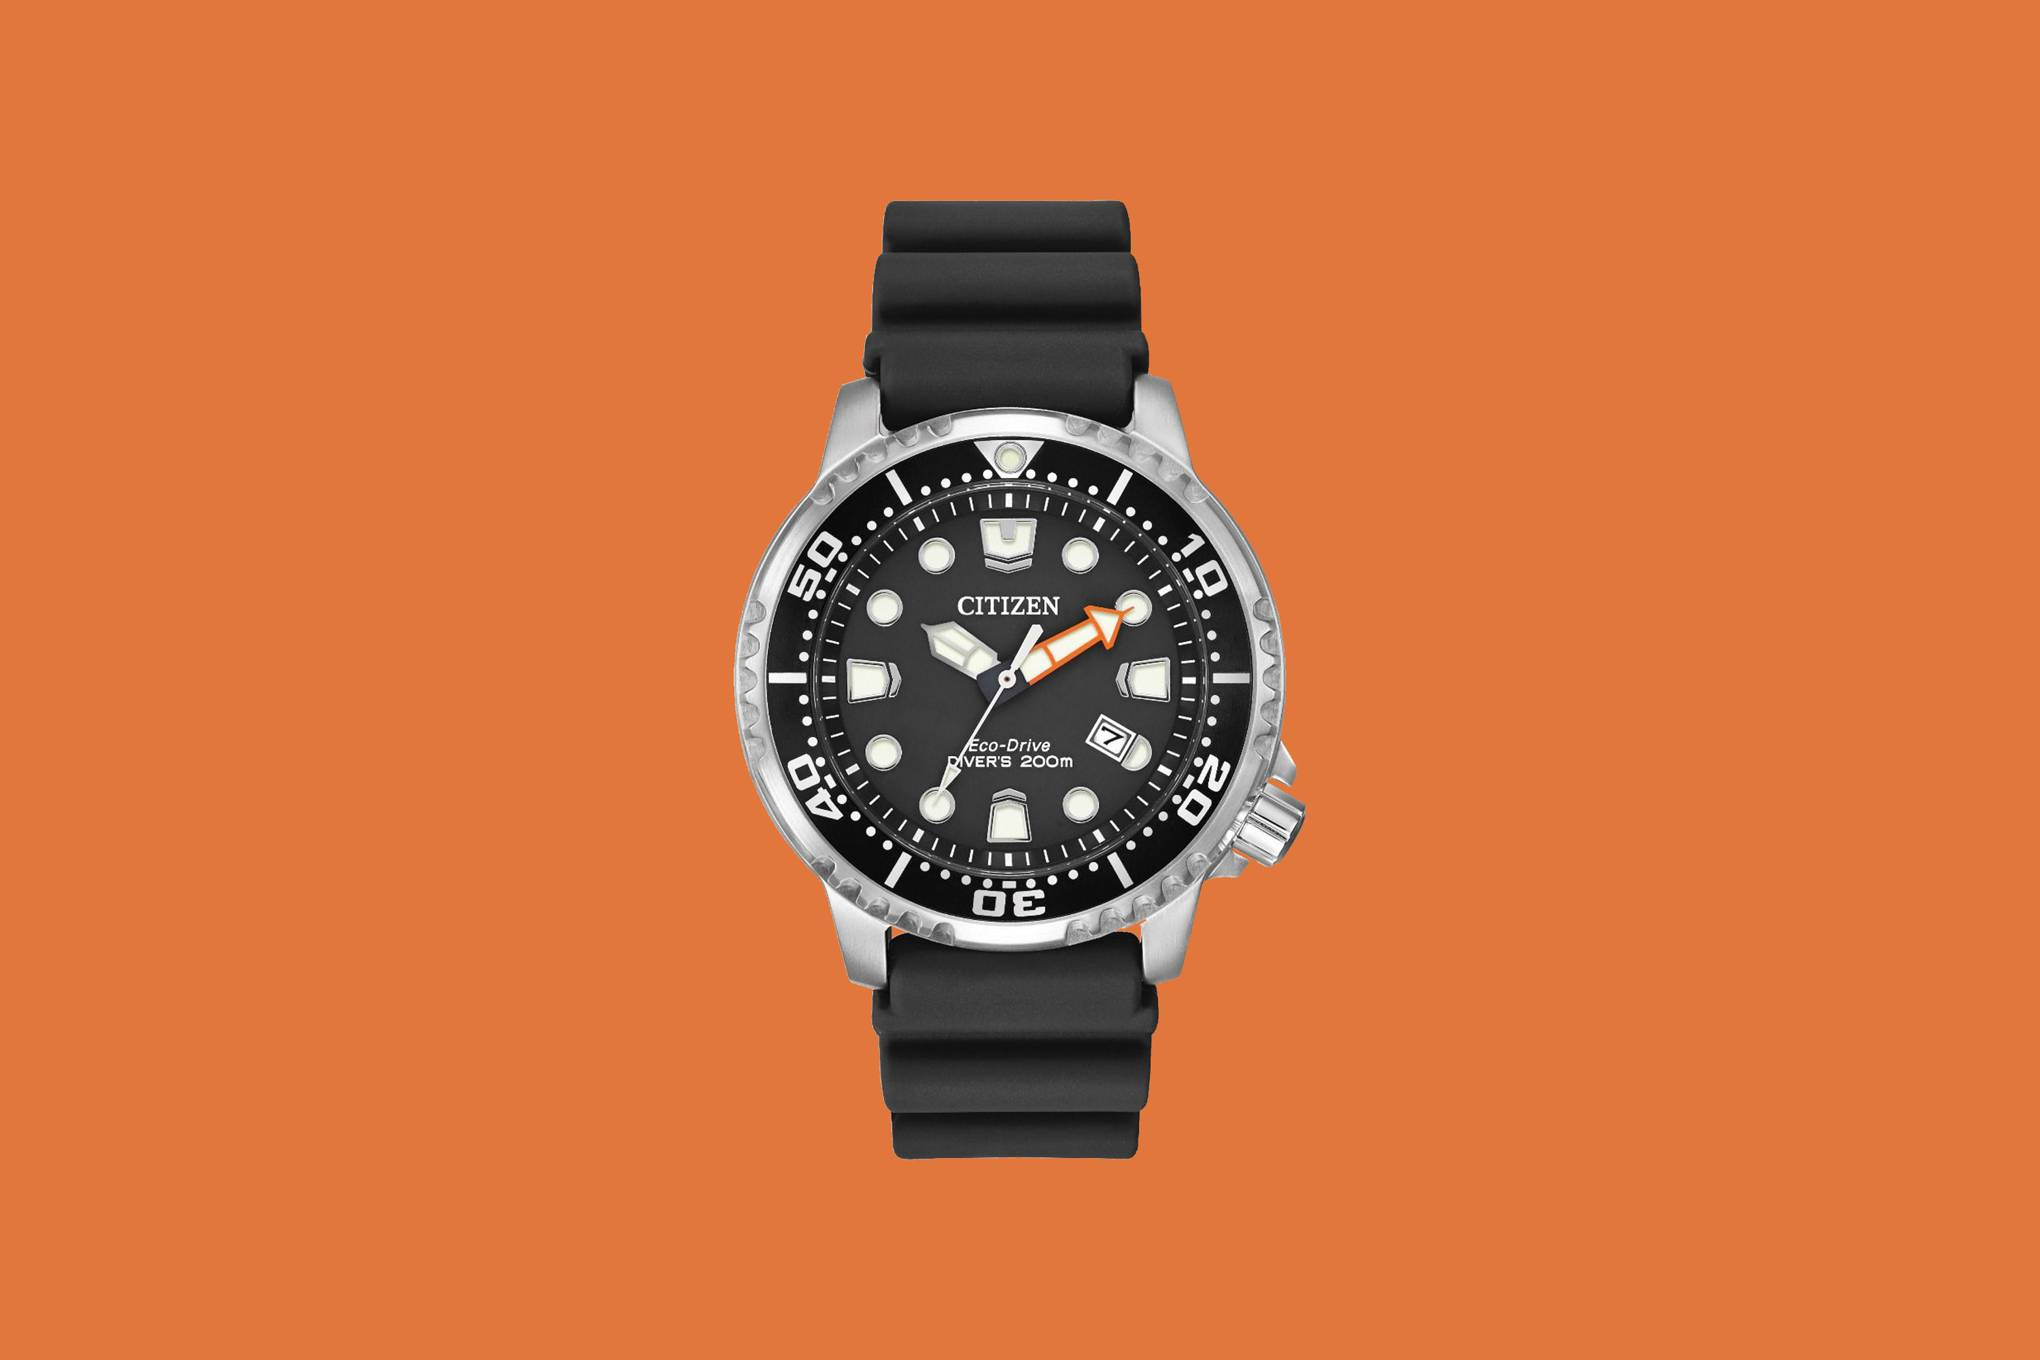 Best watches for men and women from £100 to £1,000 | WIRED UK